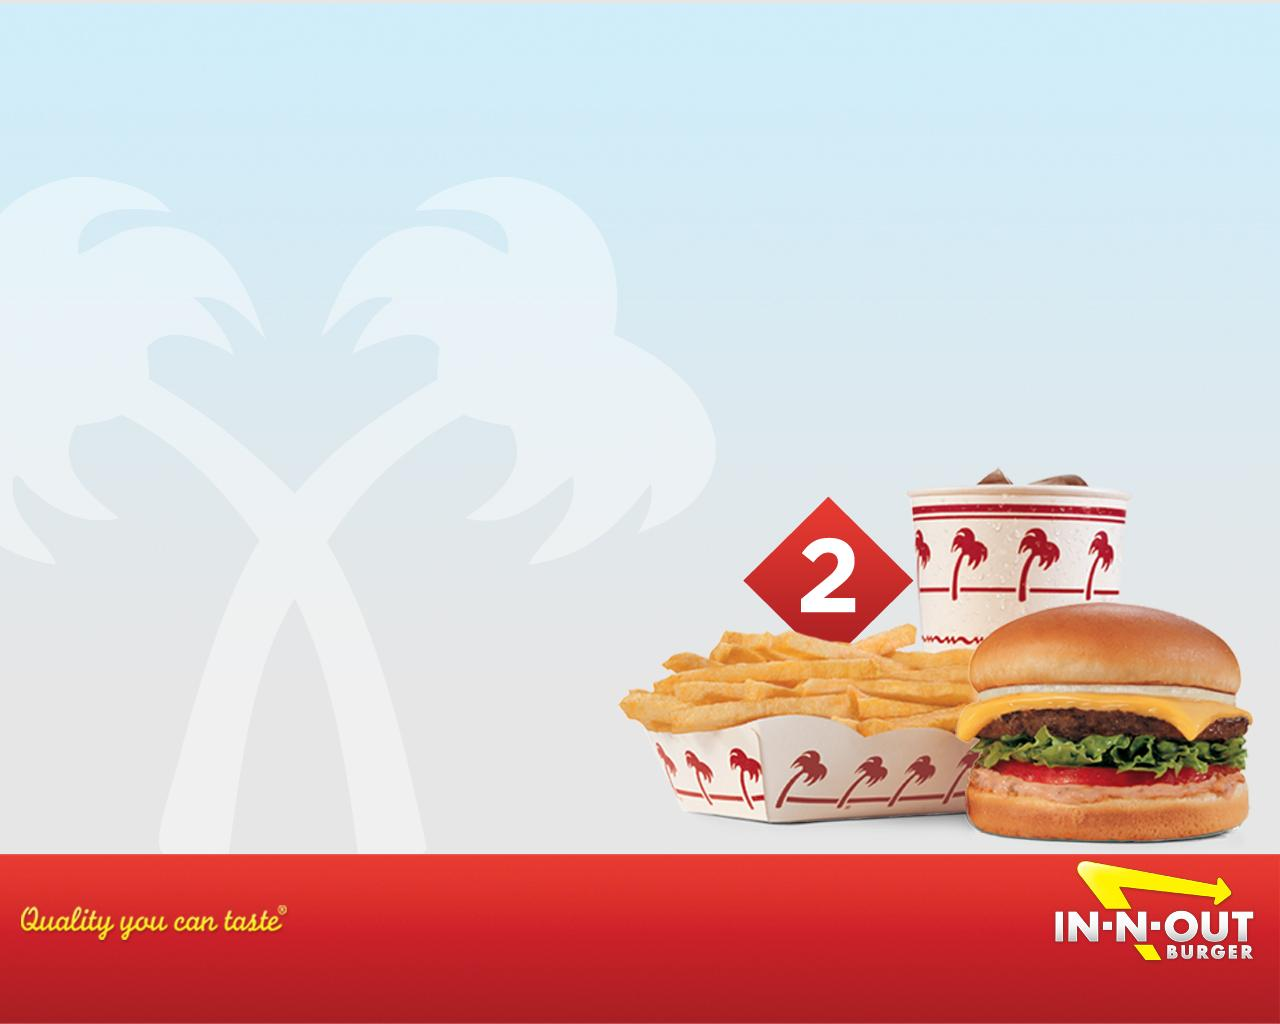 Download Wallpaper - Combo #2 Crossed Palms - 1280x1024 - In-N-Out ...